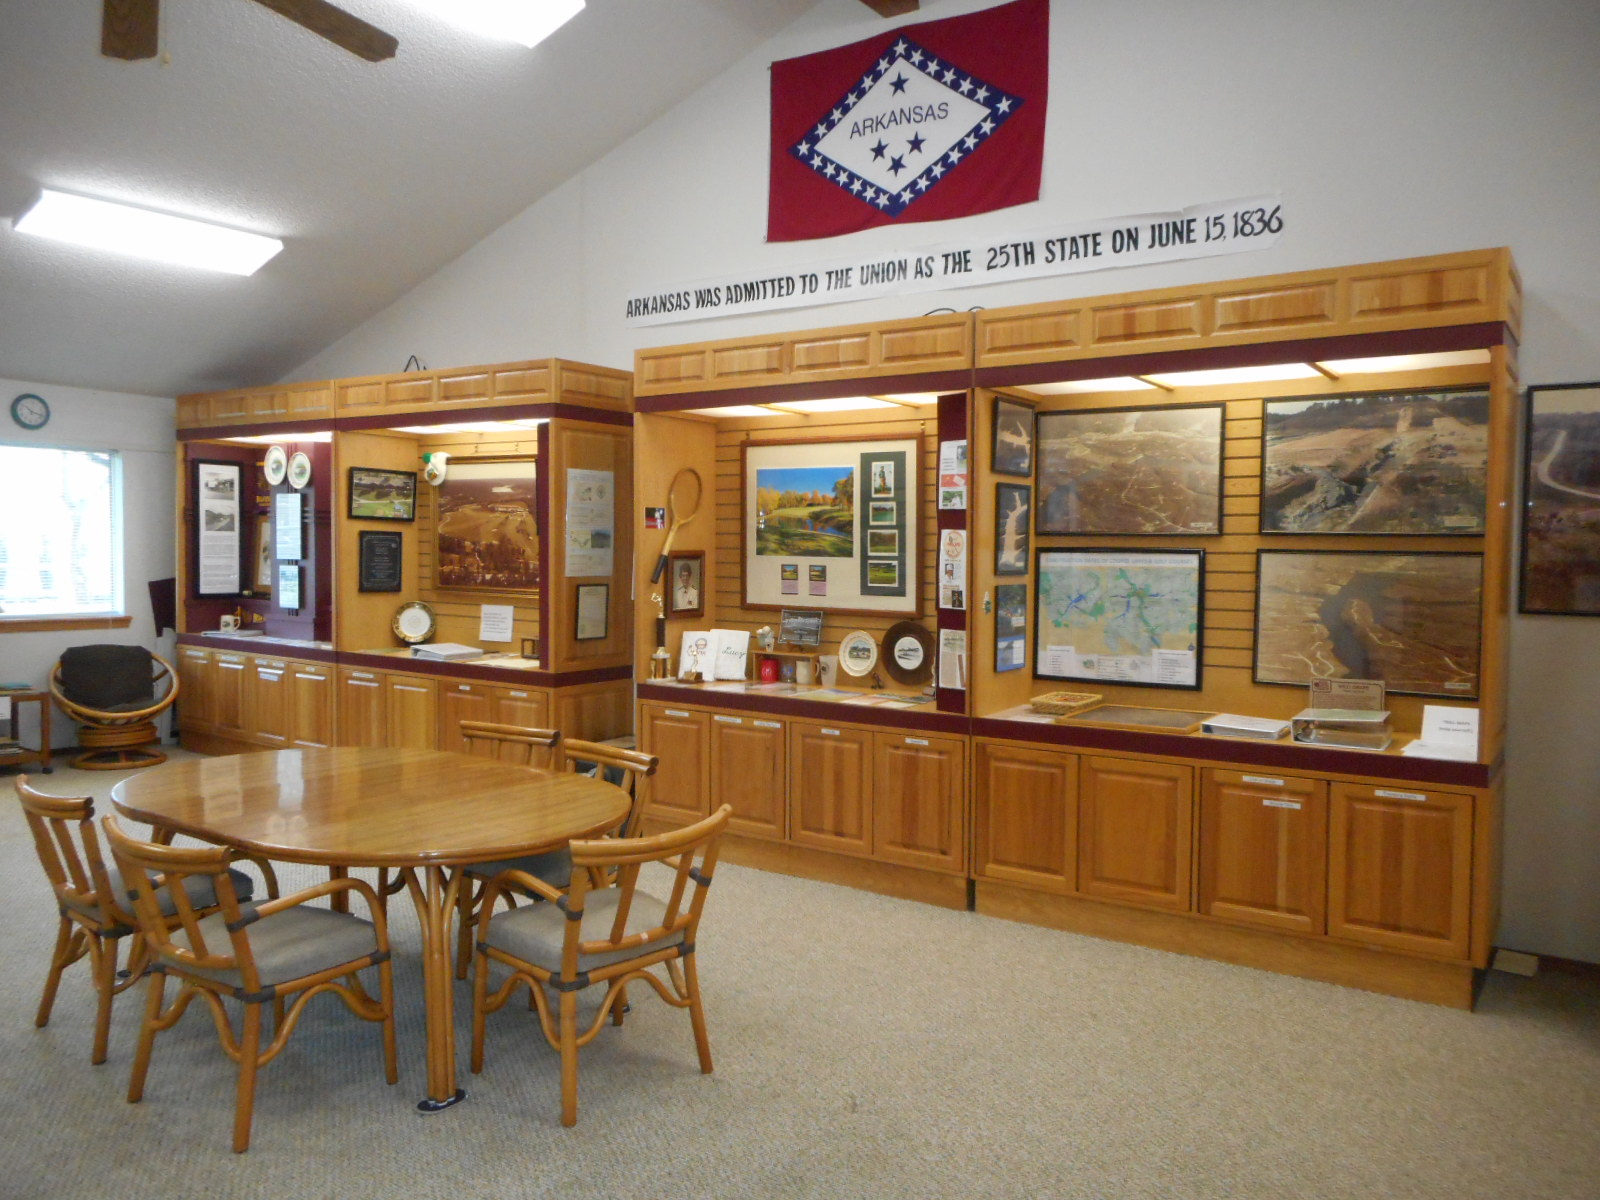 One of the exhibit rooms